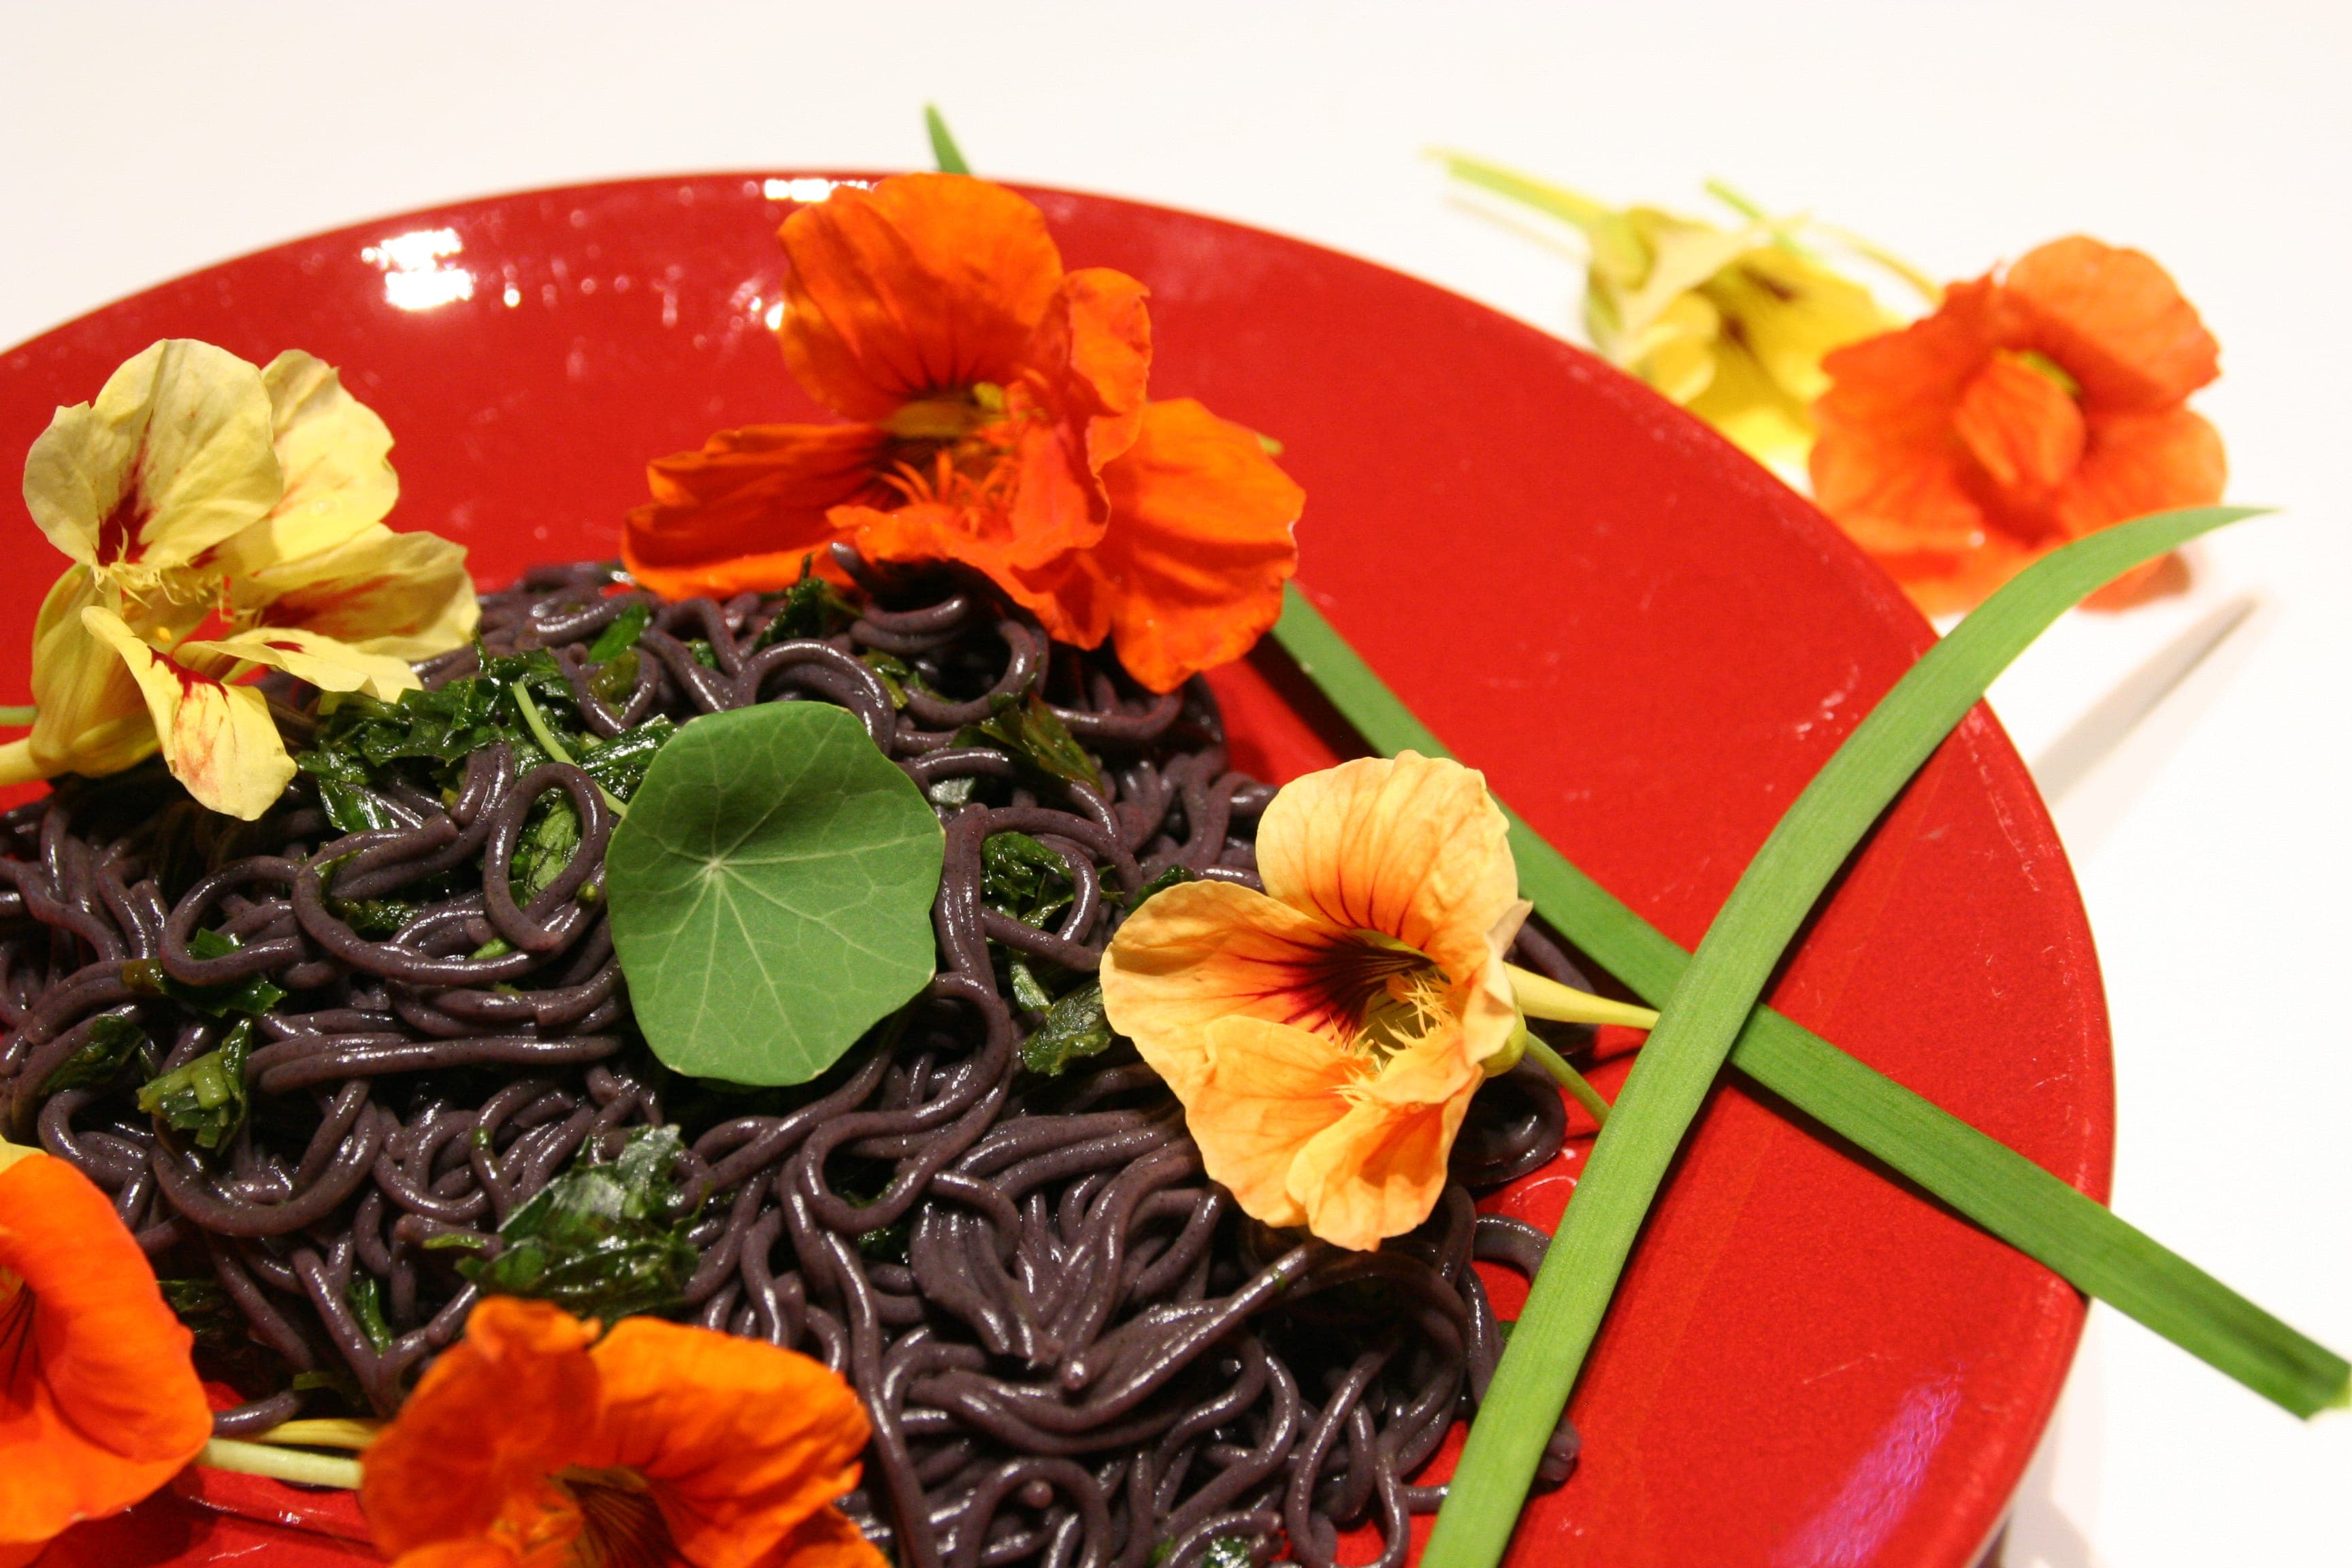 Nasturtiums Beautiful Edible And Easy To Grow Chef And Author Robin Asbell,Lemon Drop Shots Recipe